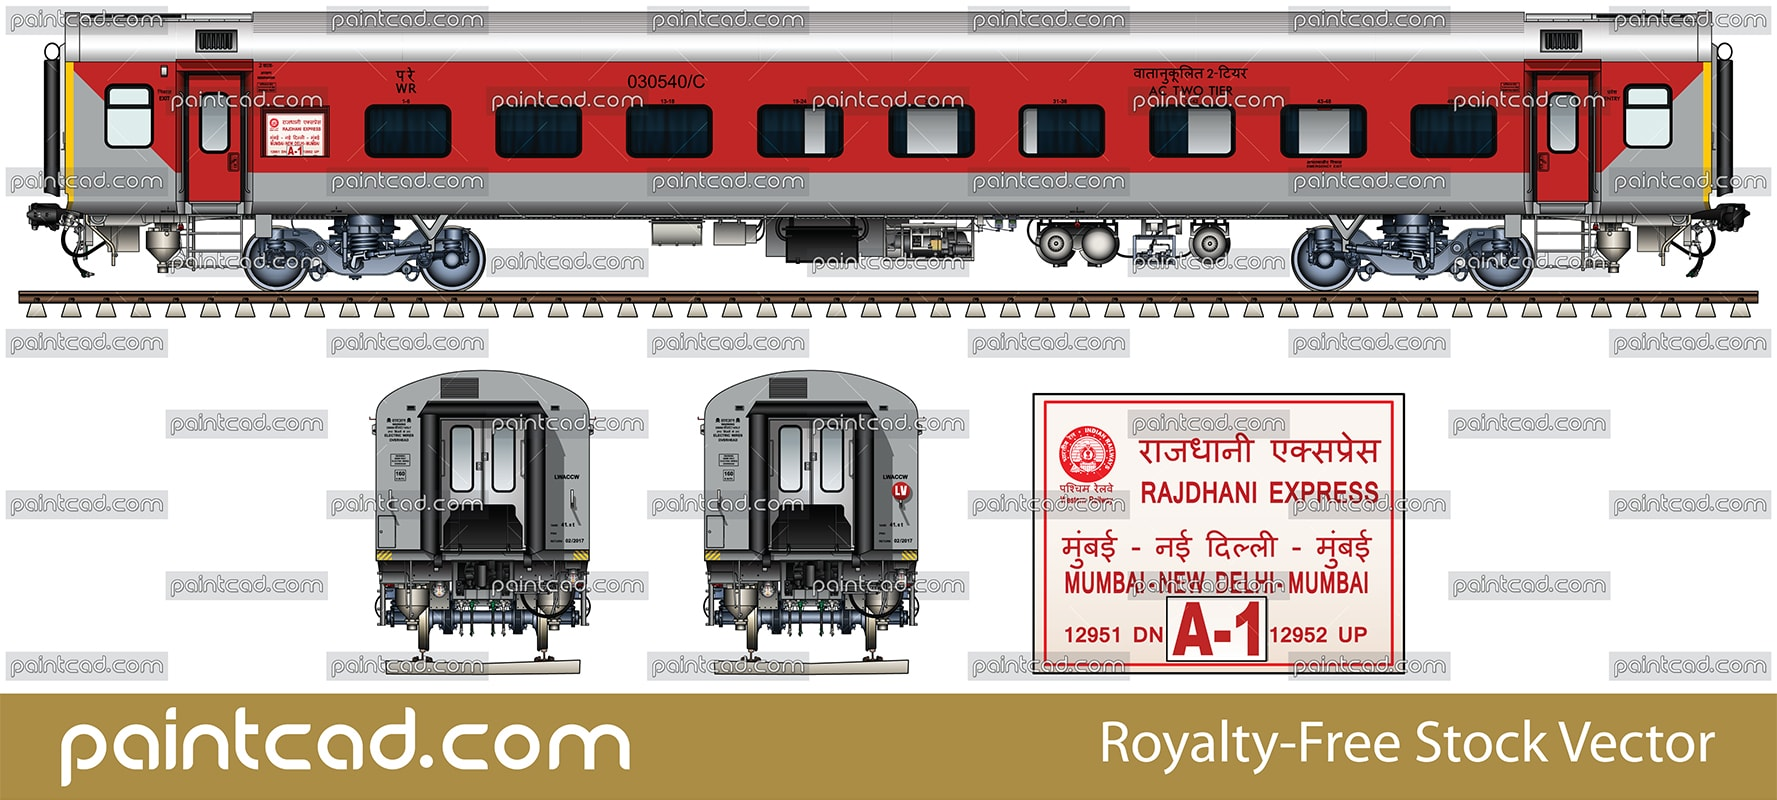 LHB AC two tier coach by Rajdhani Express Mumbai-New Delhi - vector illustration